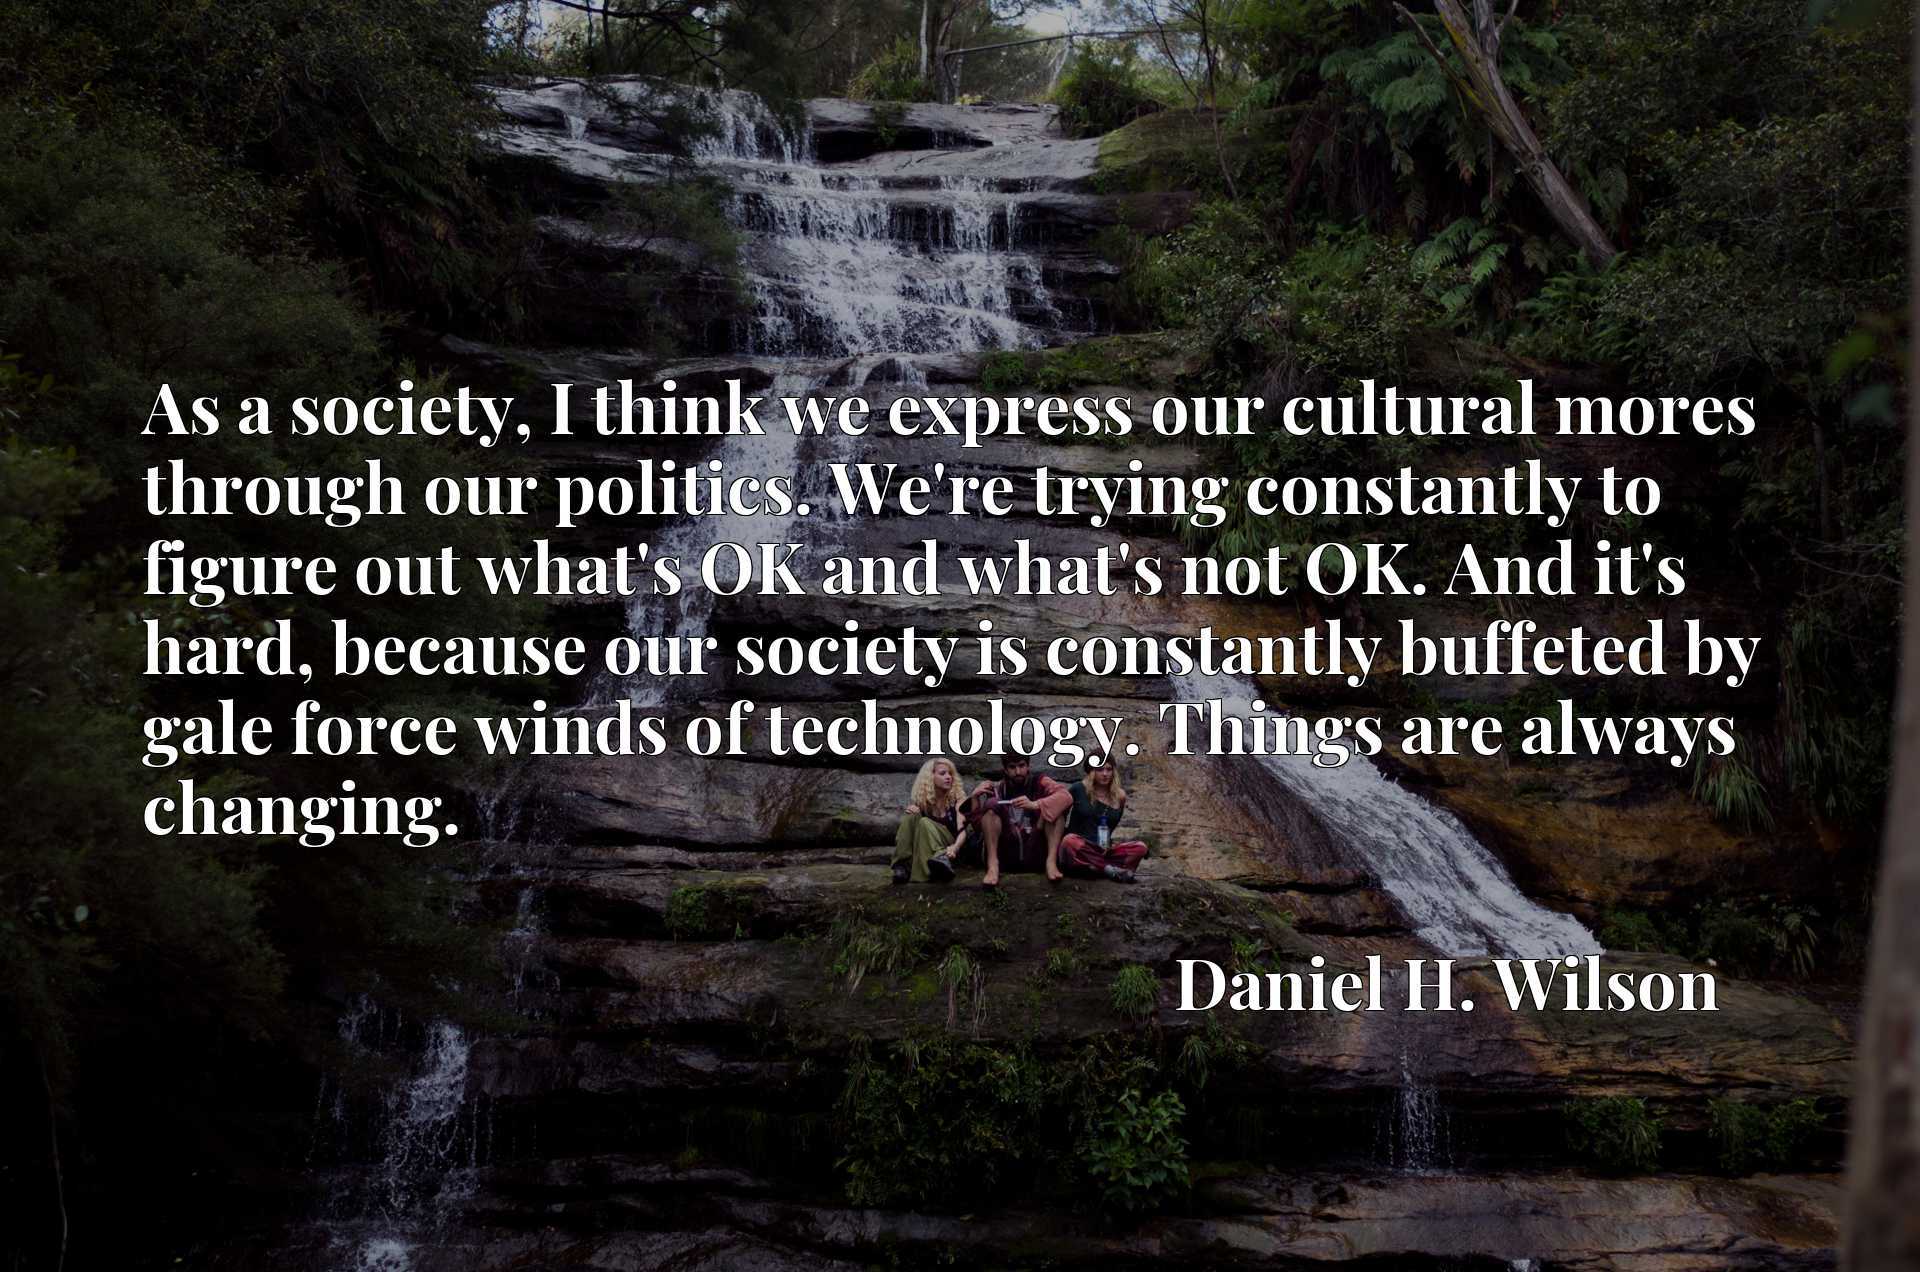 As a society, I think we express our cultural mores through our politics. We're trying constantly to figure out what's OK and what's not OK. And it's hard, because our society is constantly buffeted by gale force winds of technology. Things are always changing.